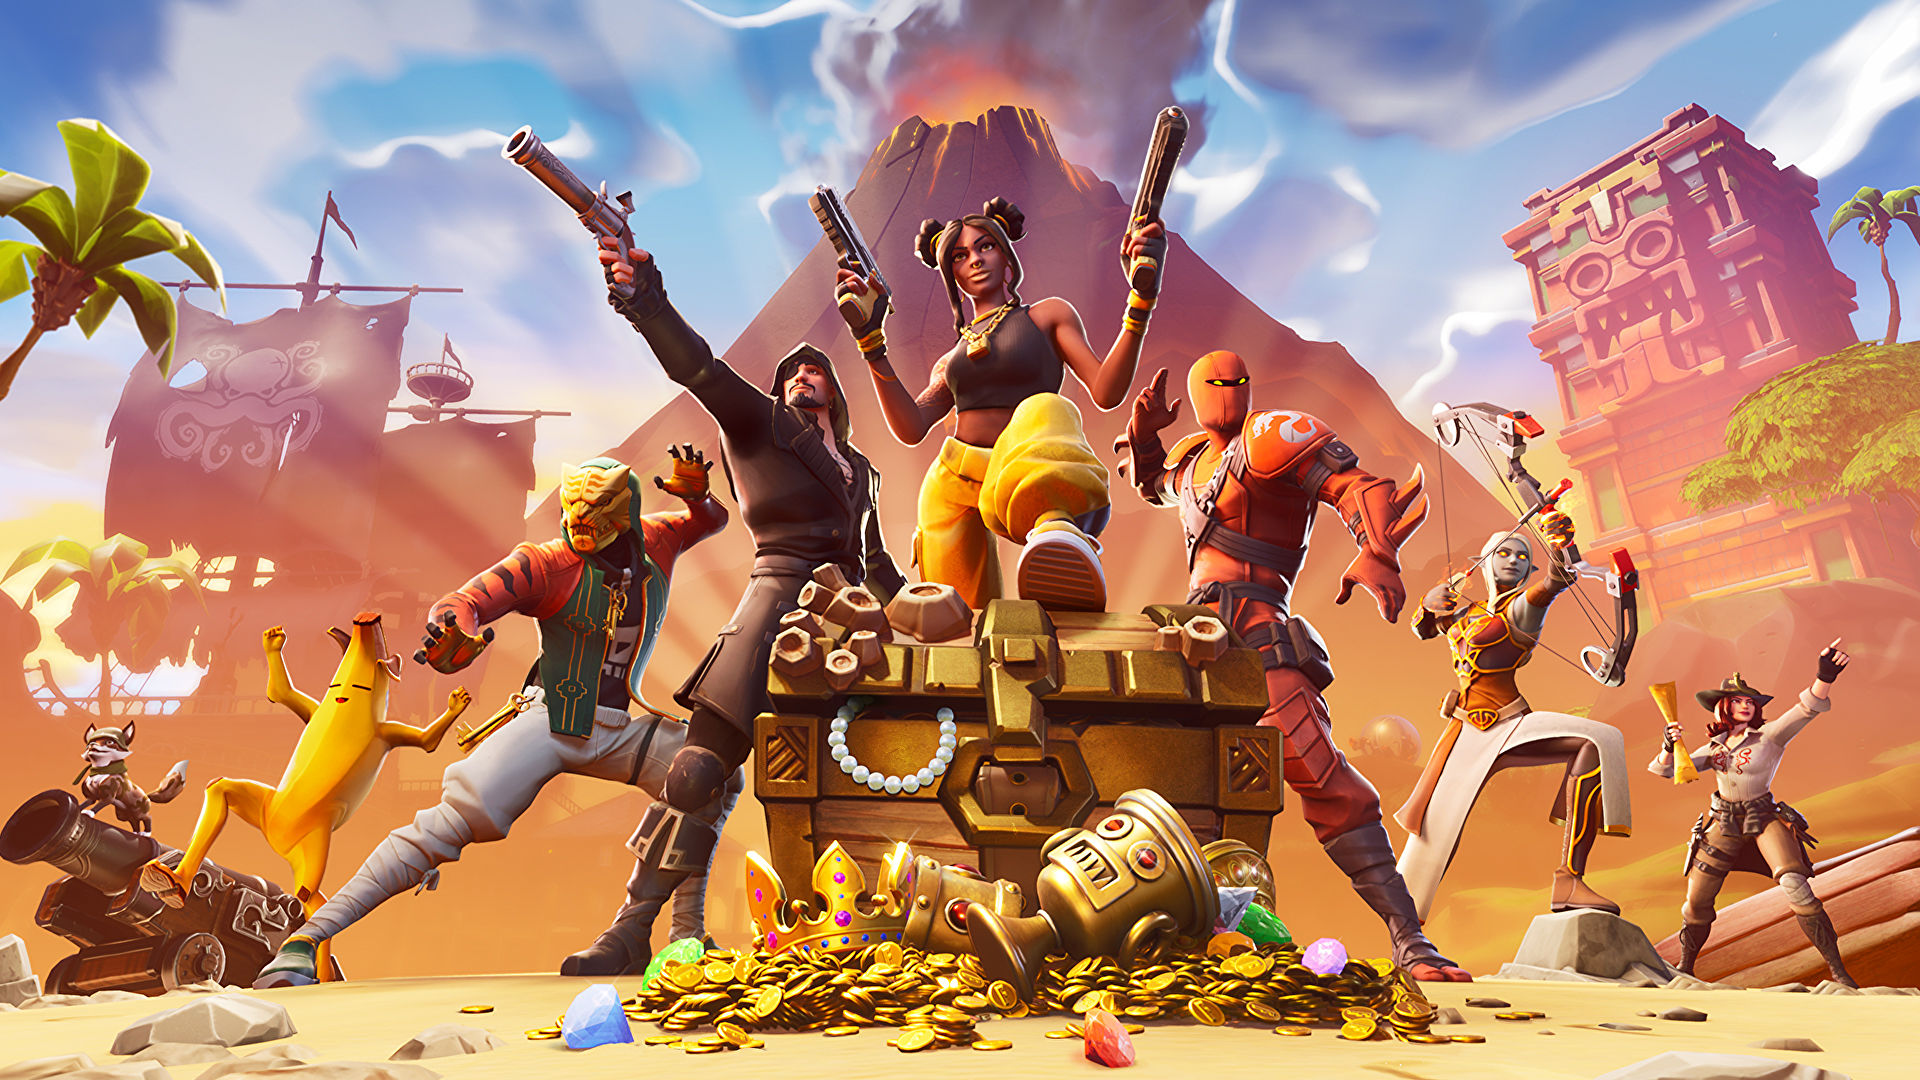 Epic spent $444 million to secure exclusive games for their store in 2020